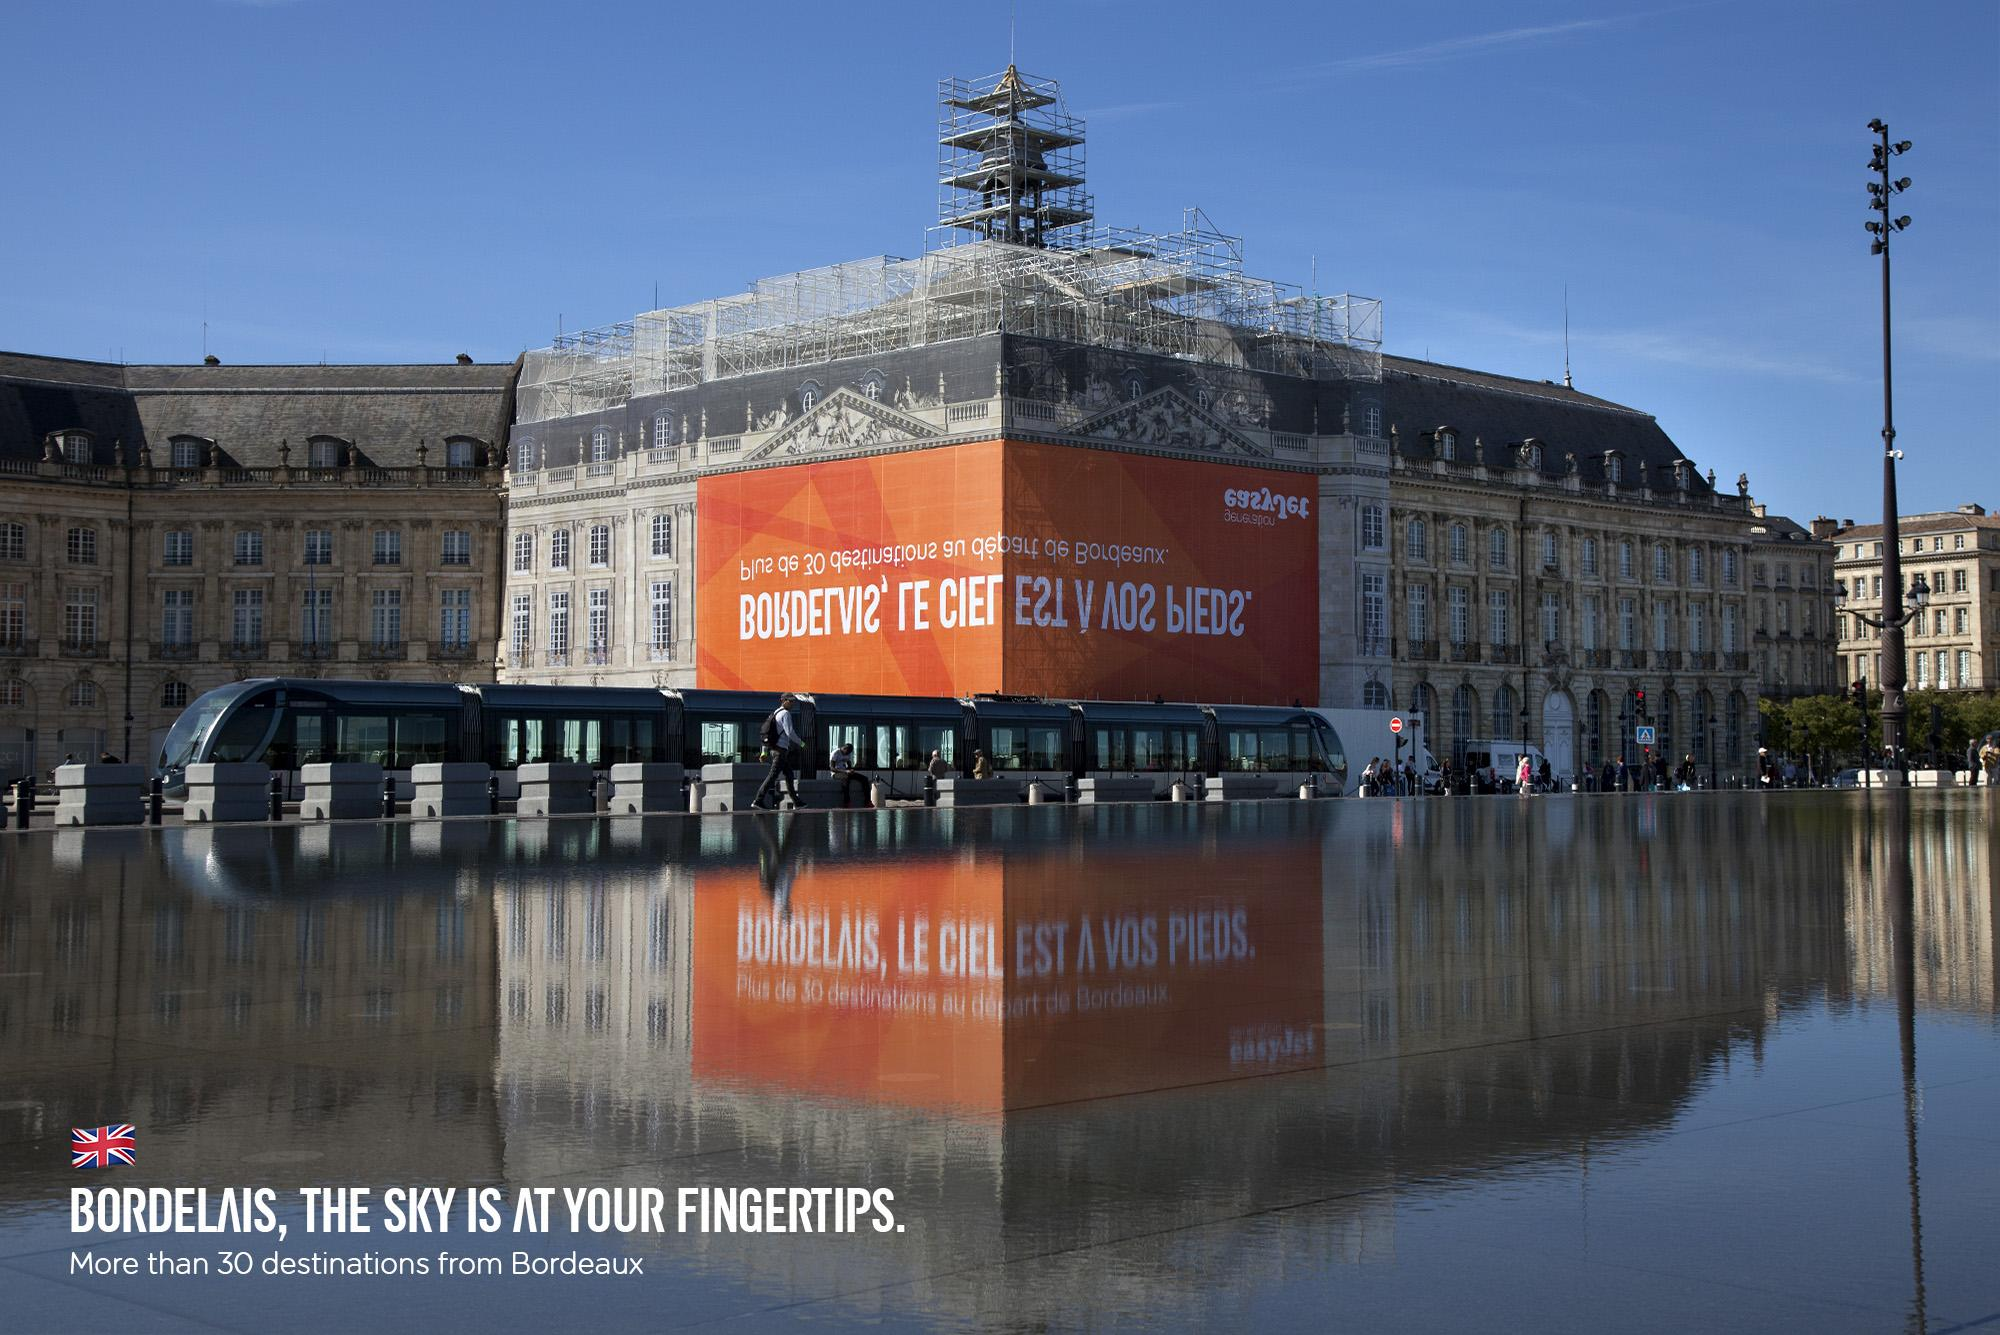 EasyJet Outdoor Ad - A Carefully Reflected Billboard